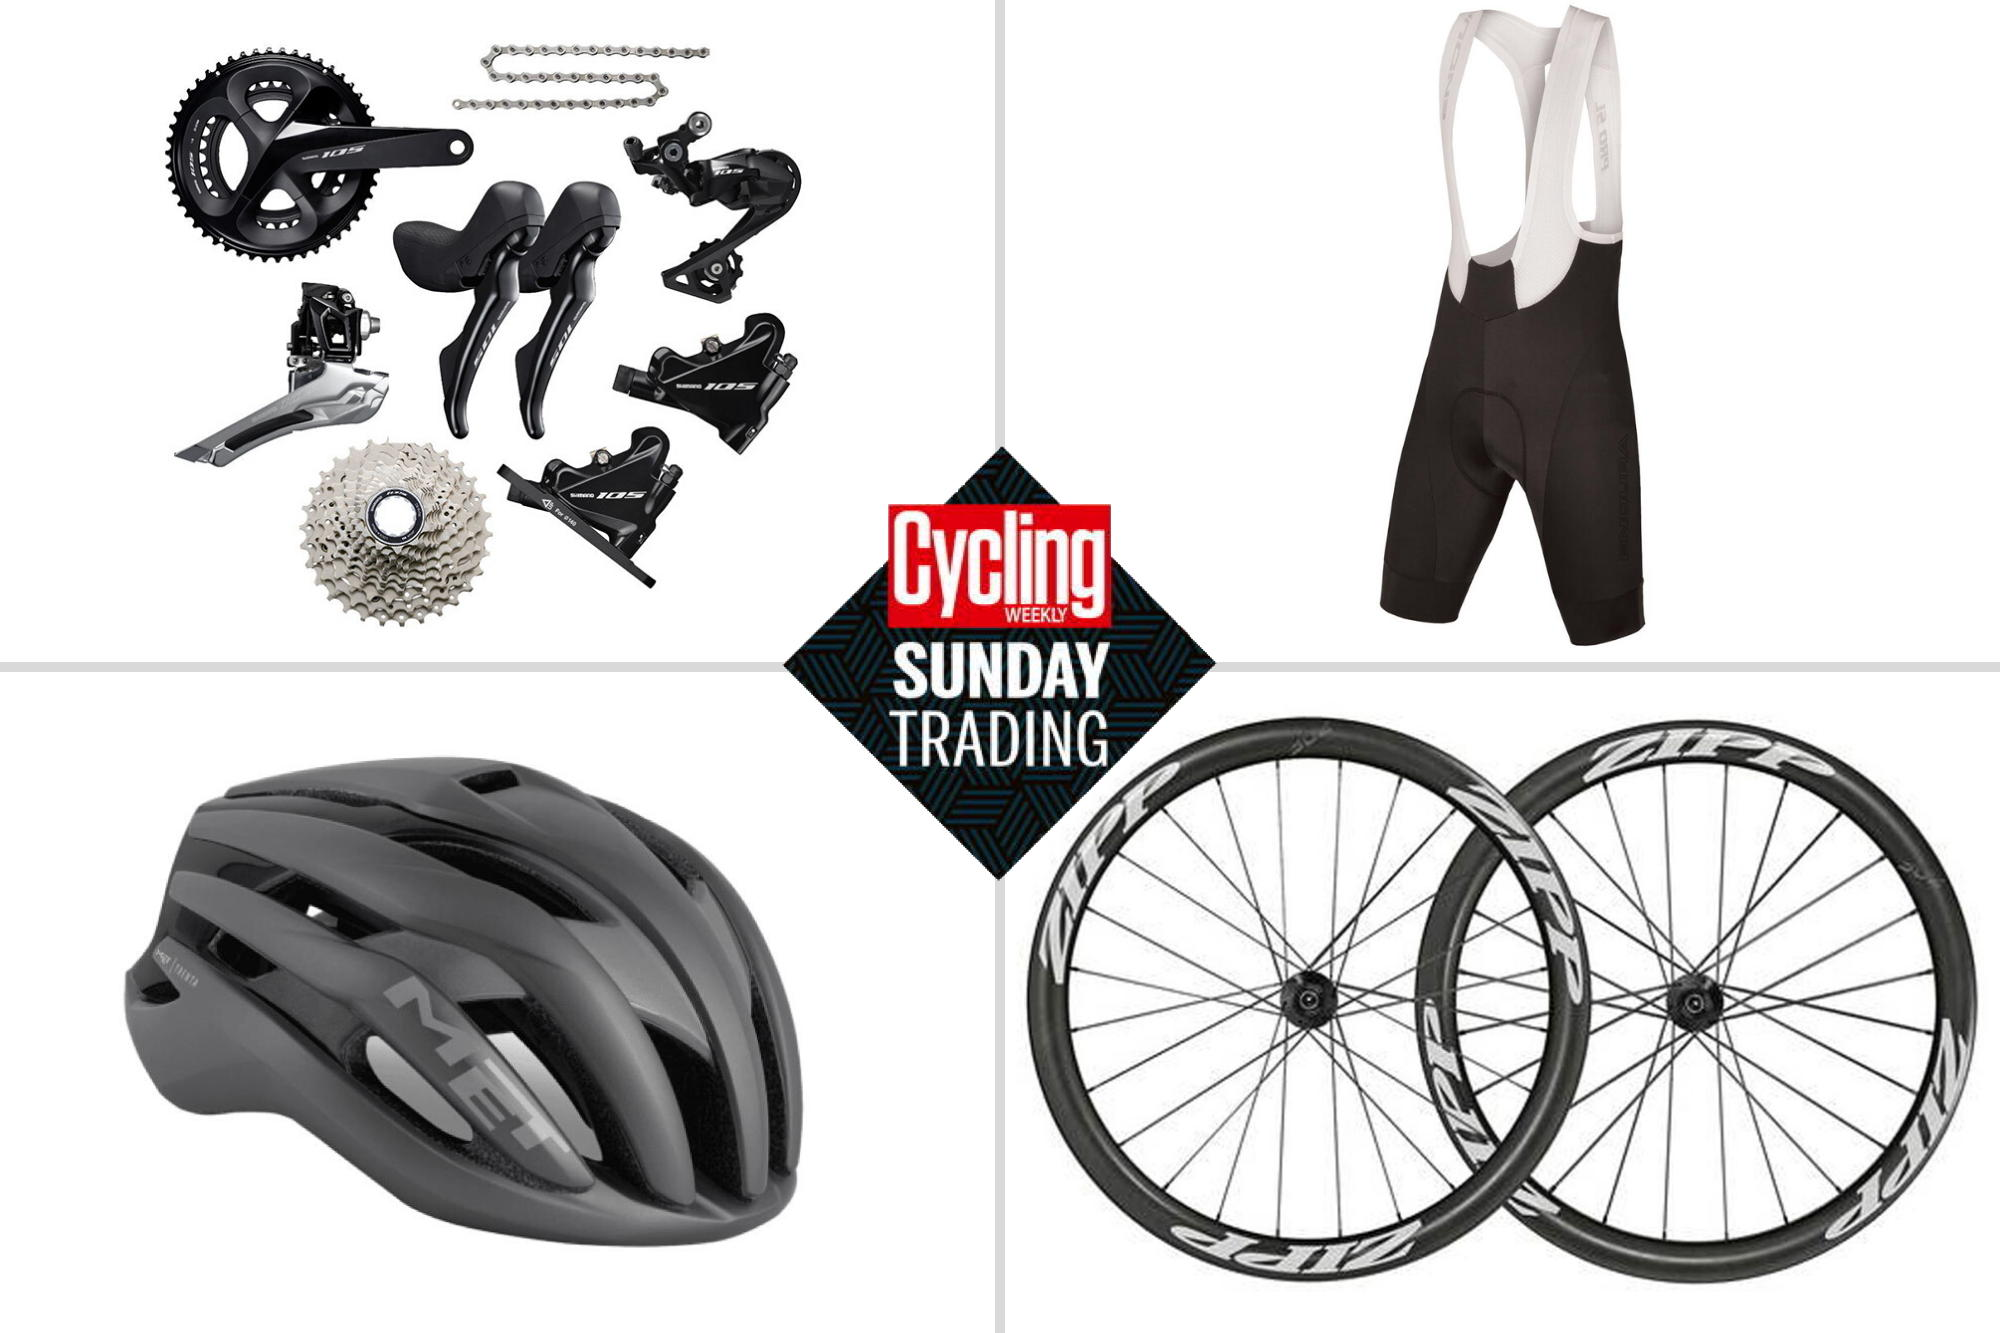 Sunday trading: Carbon Zipp wheels for less than £1000 plus much more - Cycling Weekly